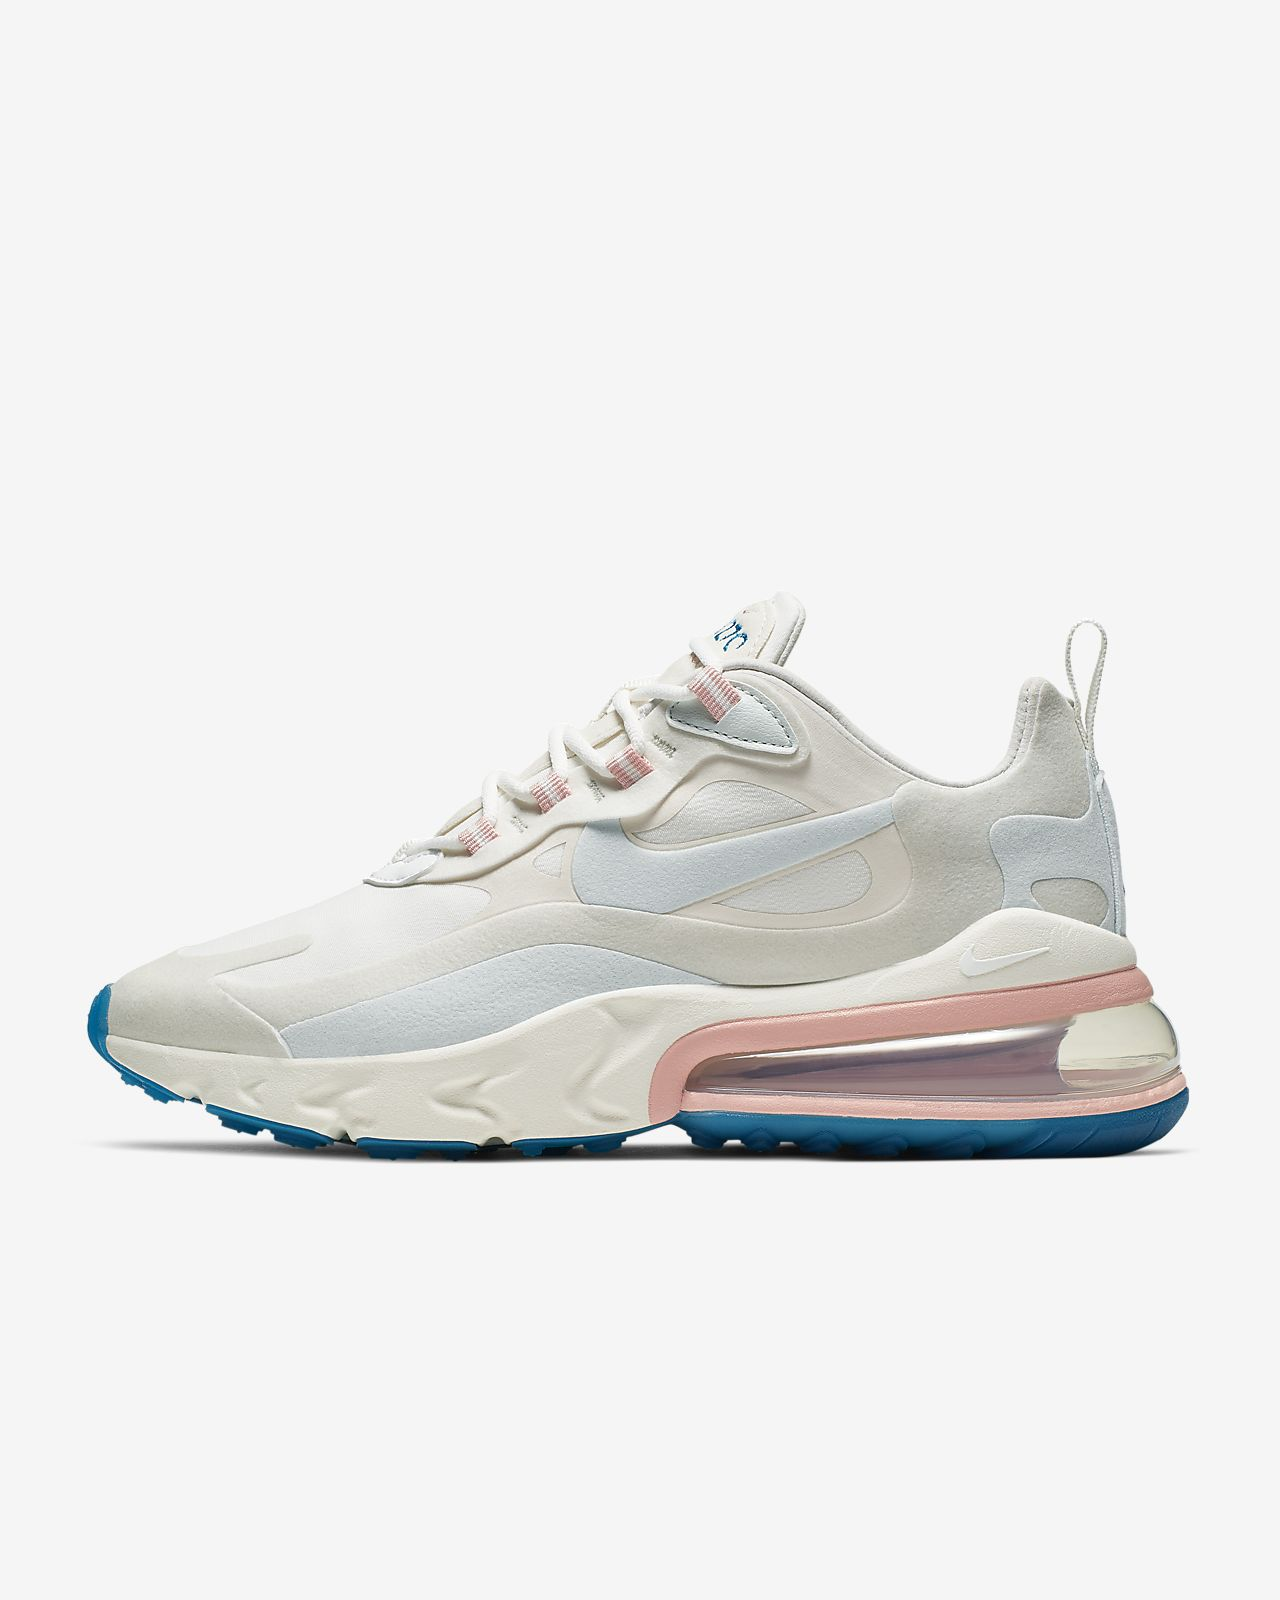 Nike Air Max 270 React (American Modern) Women's Shoe